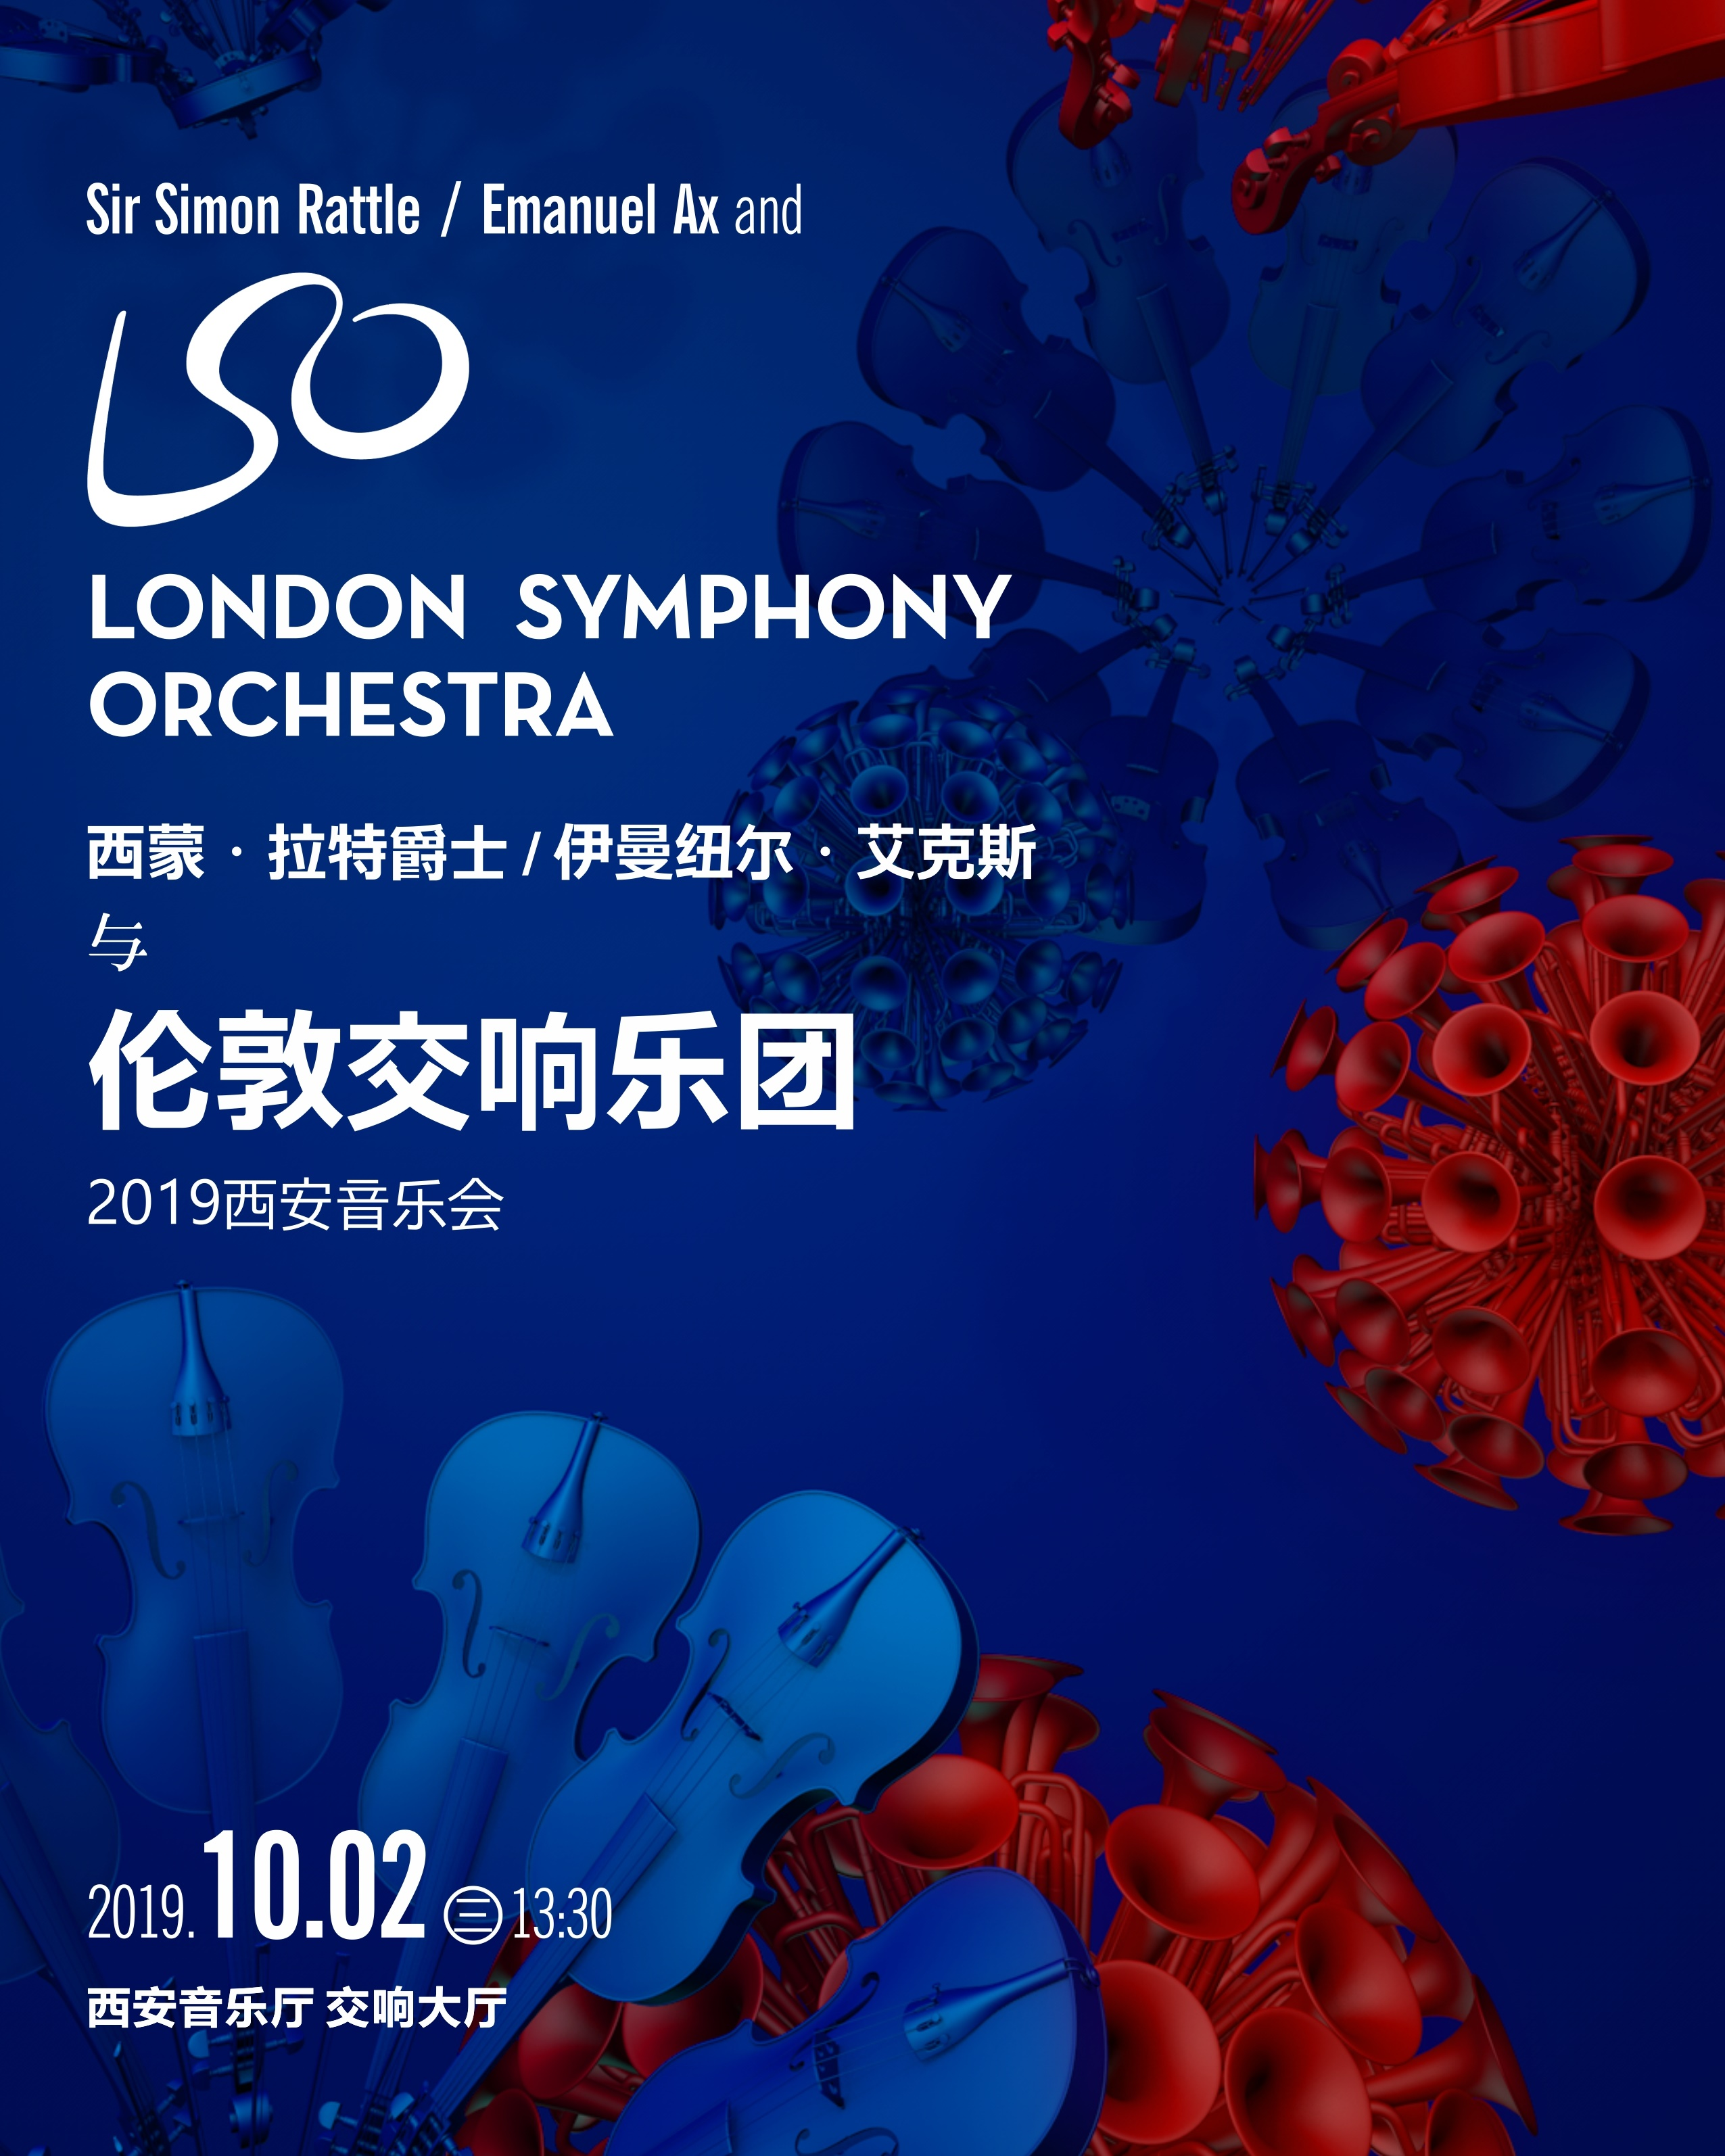 Sir Simon Rattle, Emanuel Ax and London Symphony Orchestra 2019 Xi'an concert